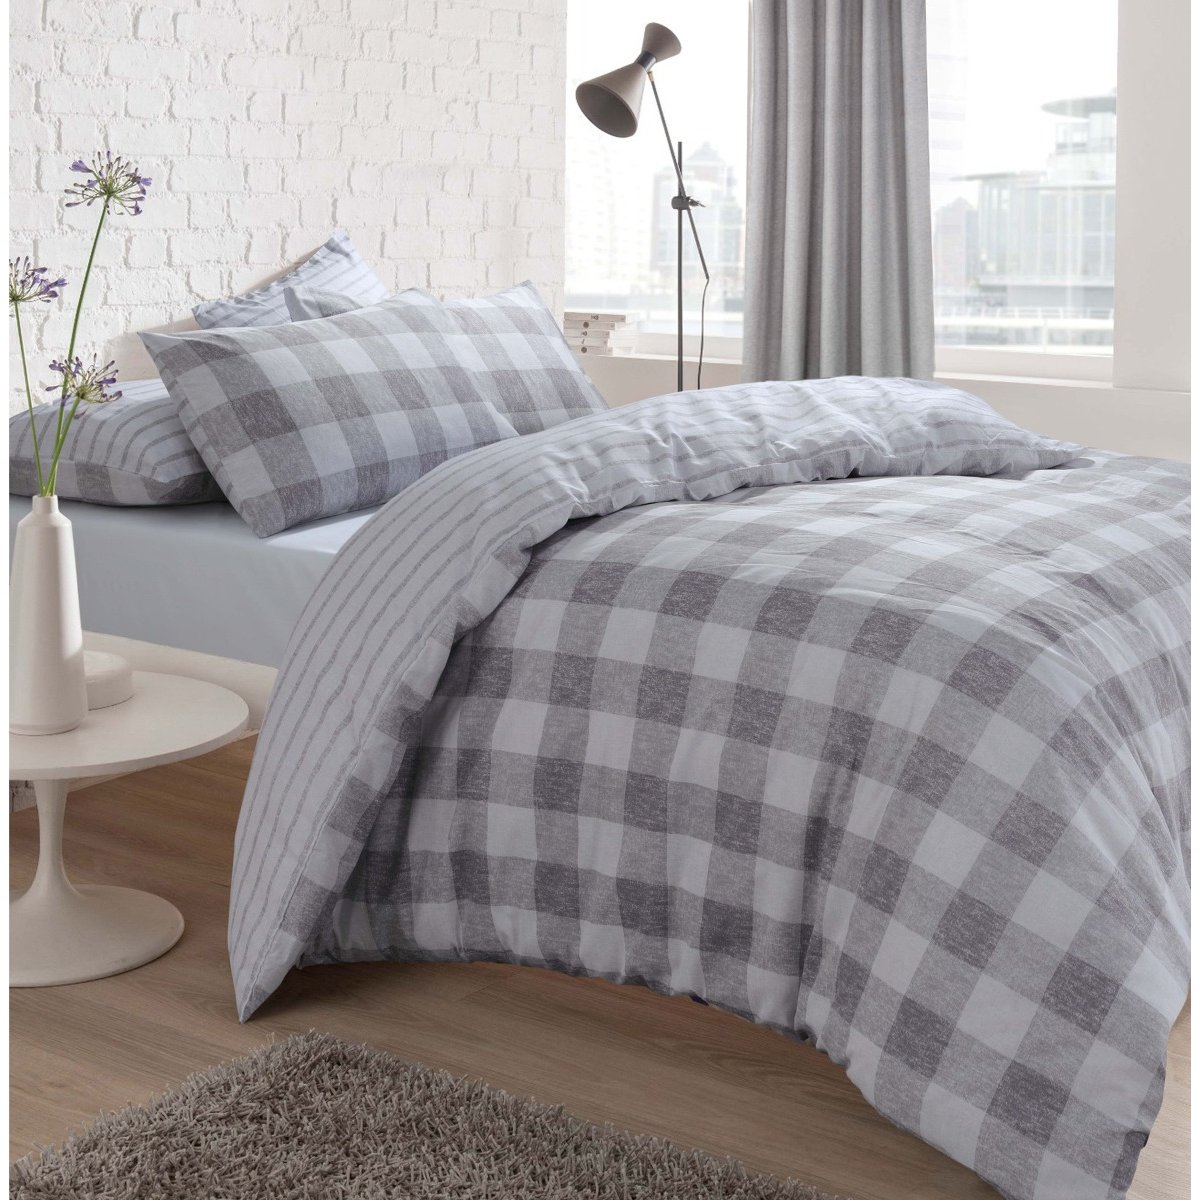 Gingham Check Grey Bedding - Reversible Duvet Cover and Pillowcase Set